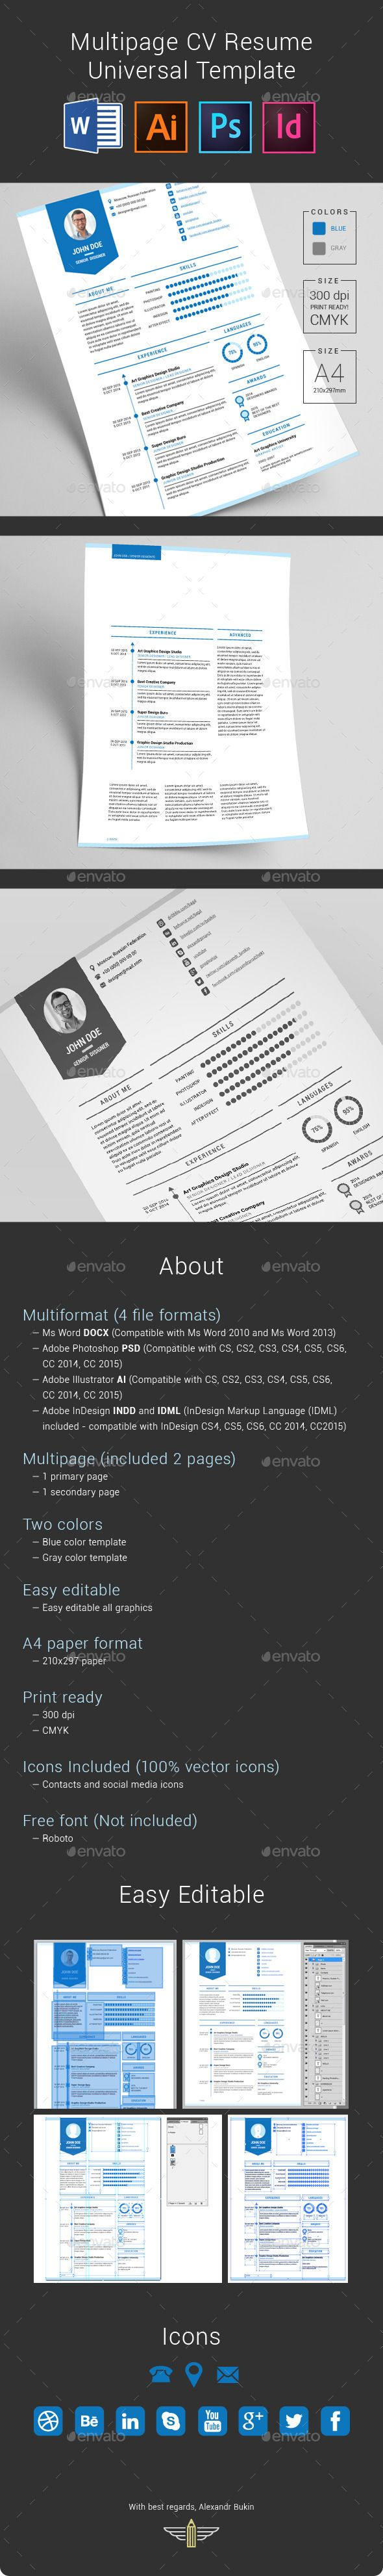 Multipage CV Resume Universal Template Simple resume